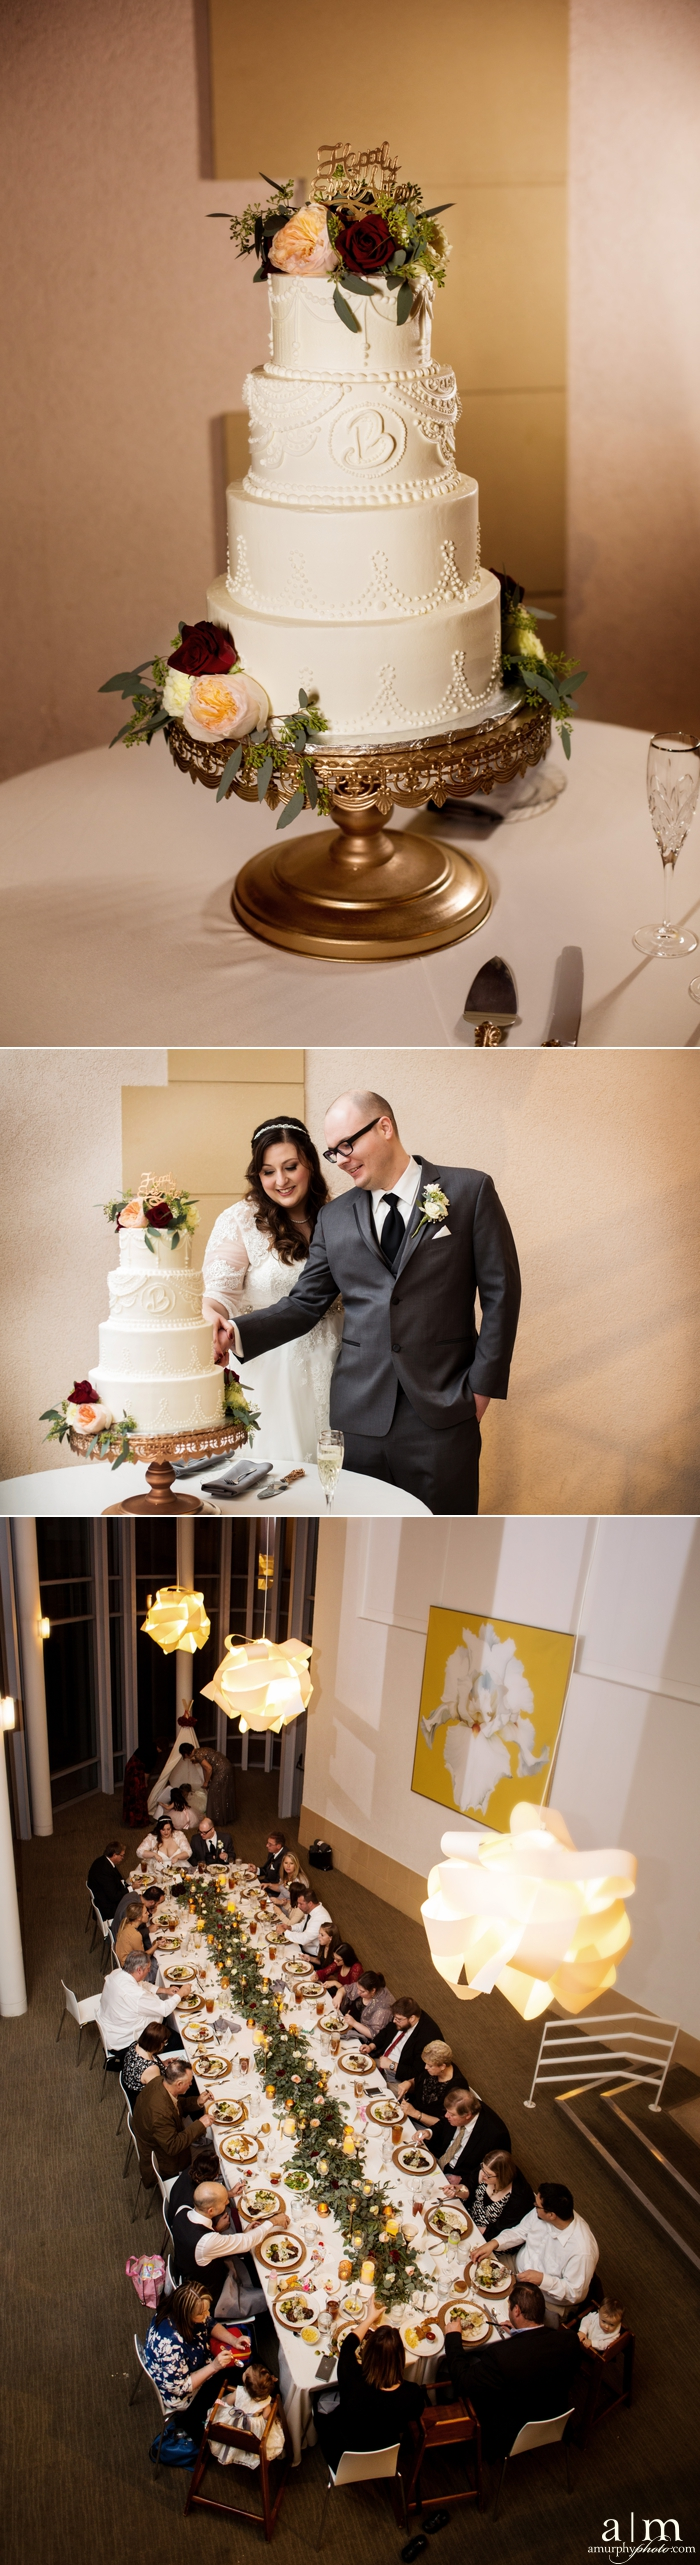 Philbrook Museum Wedding 11.jpg